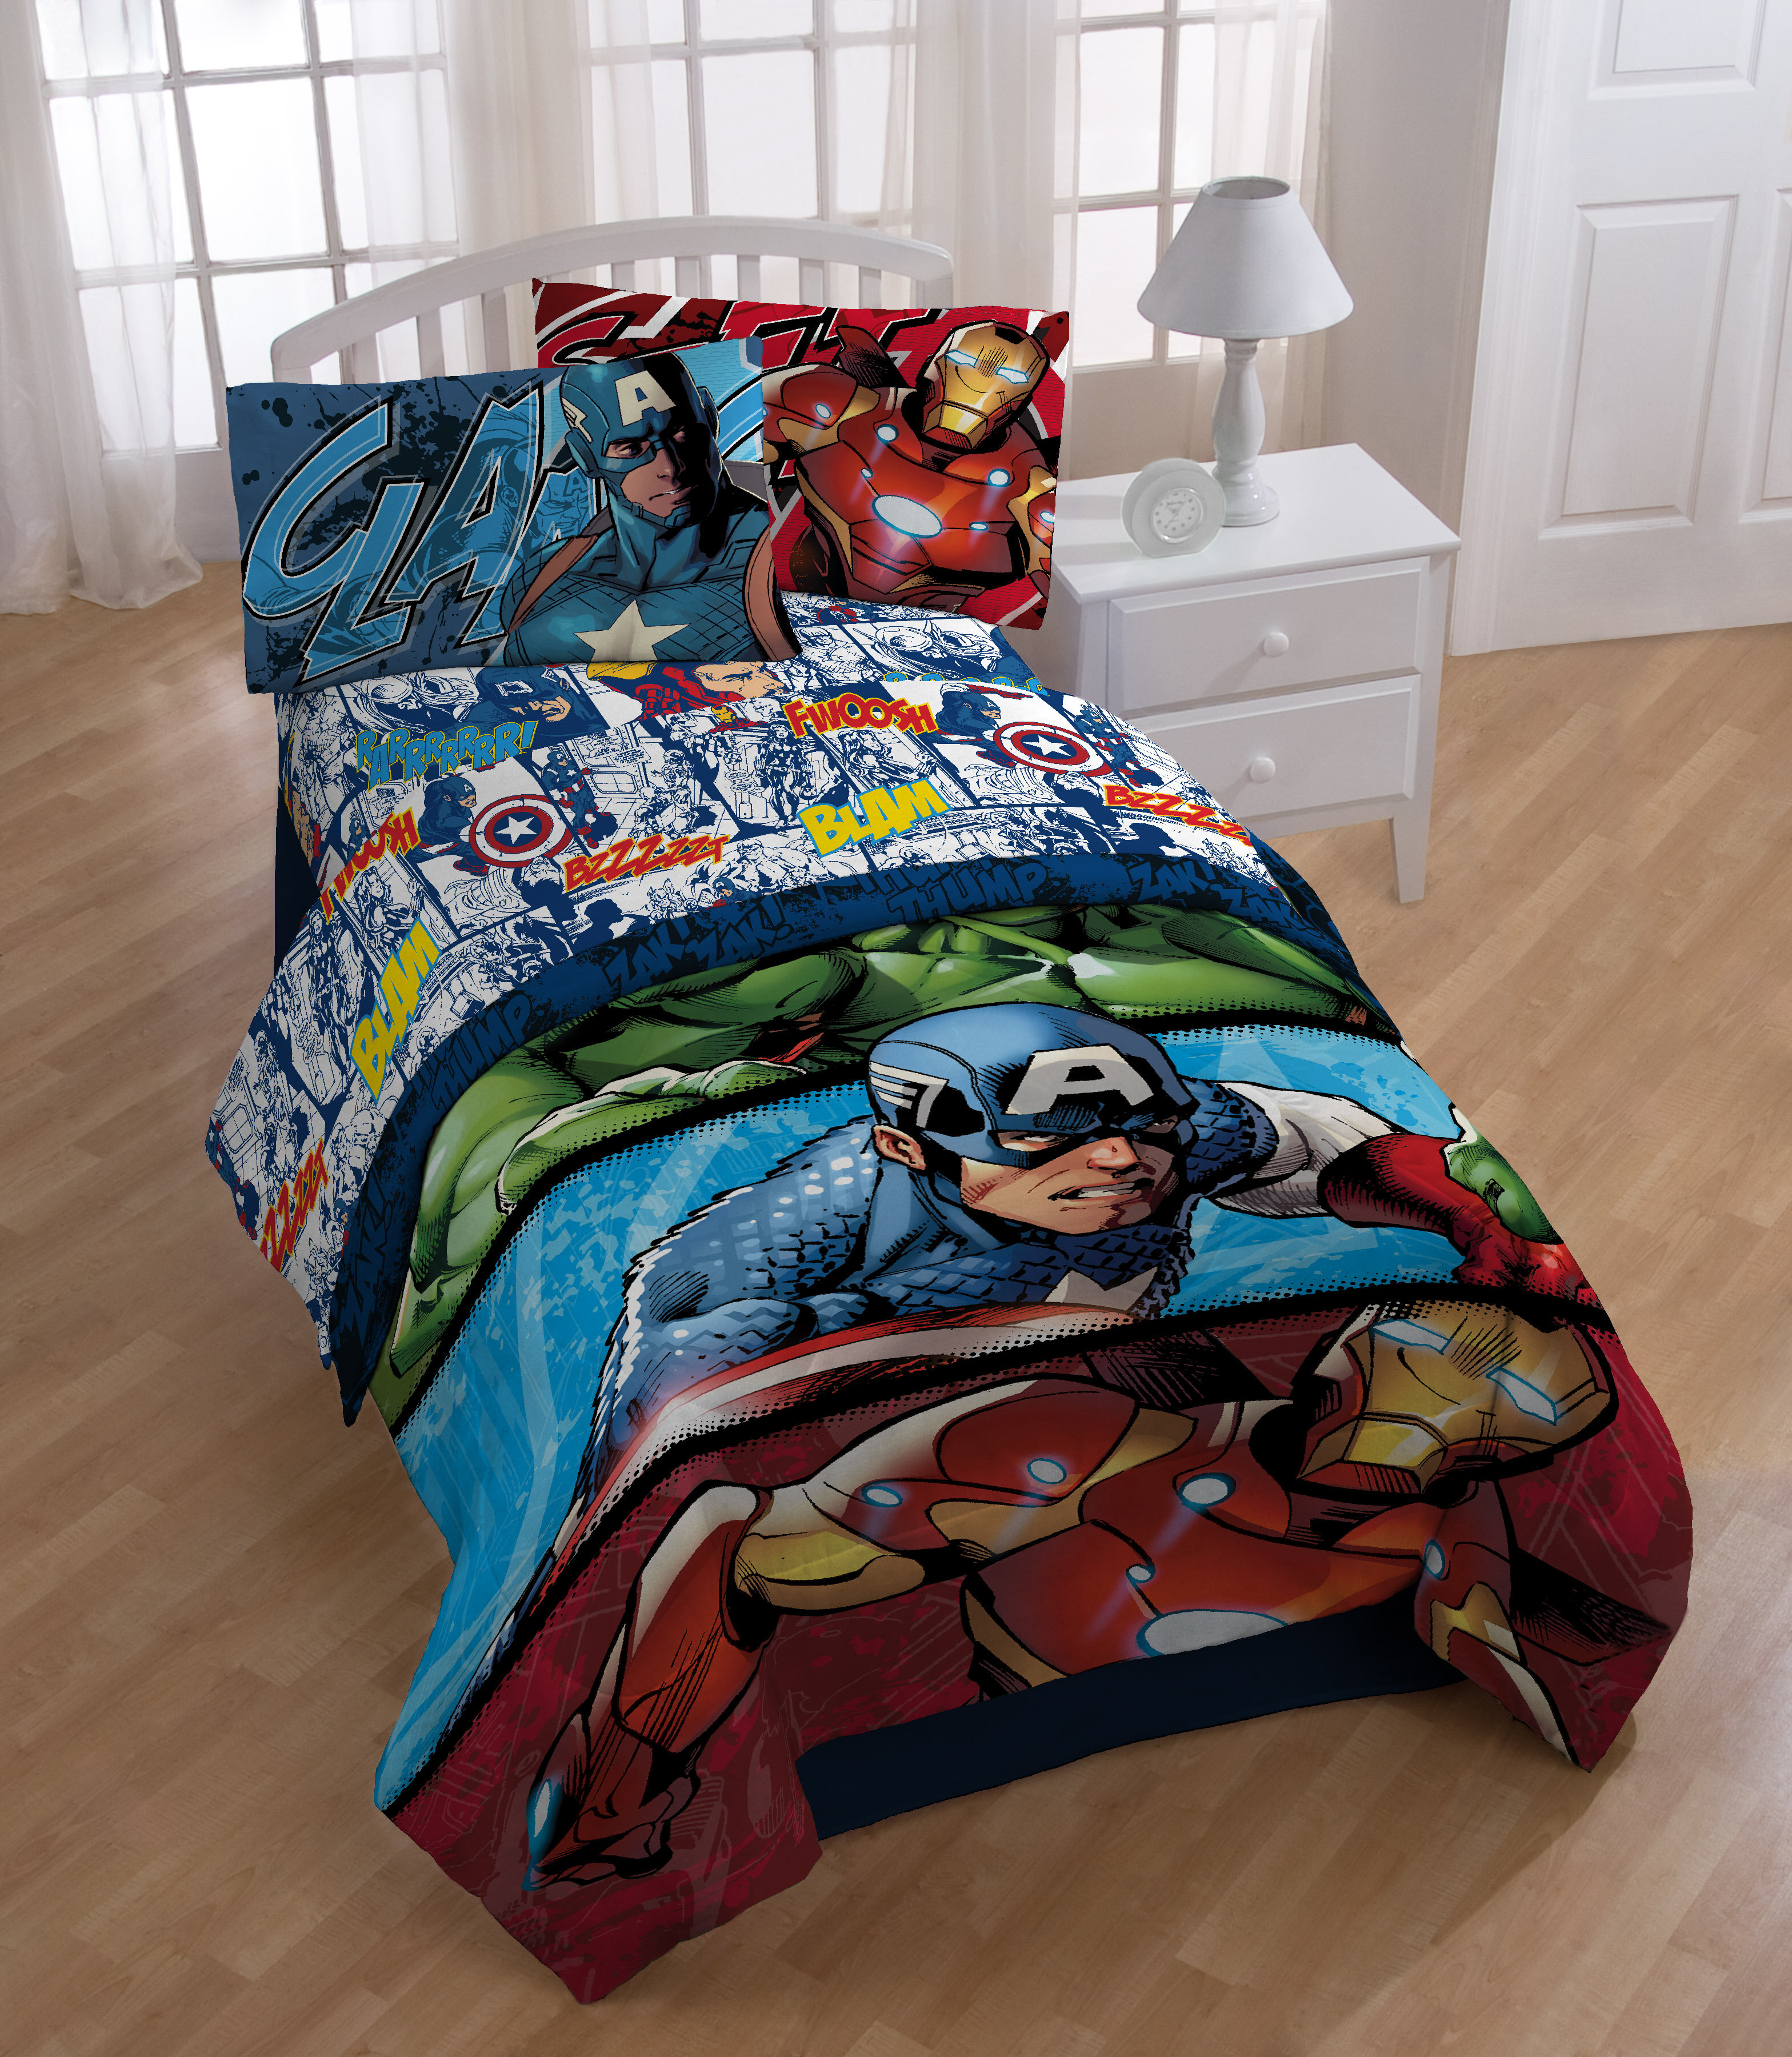 blankets kids choice throw avengers batman your jurassic and for world comforter picture minions best of